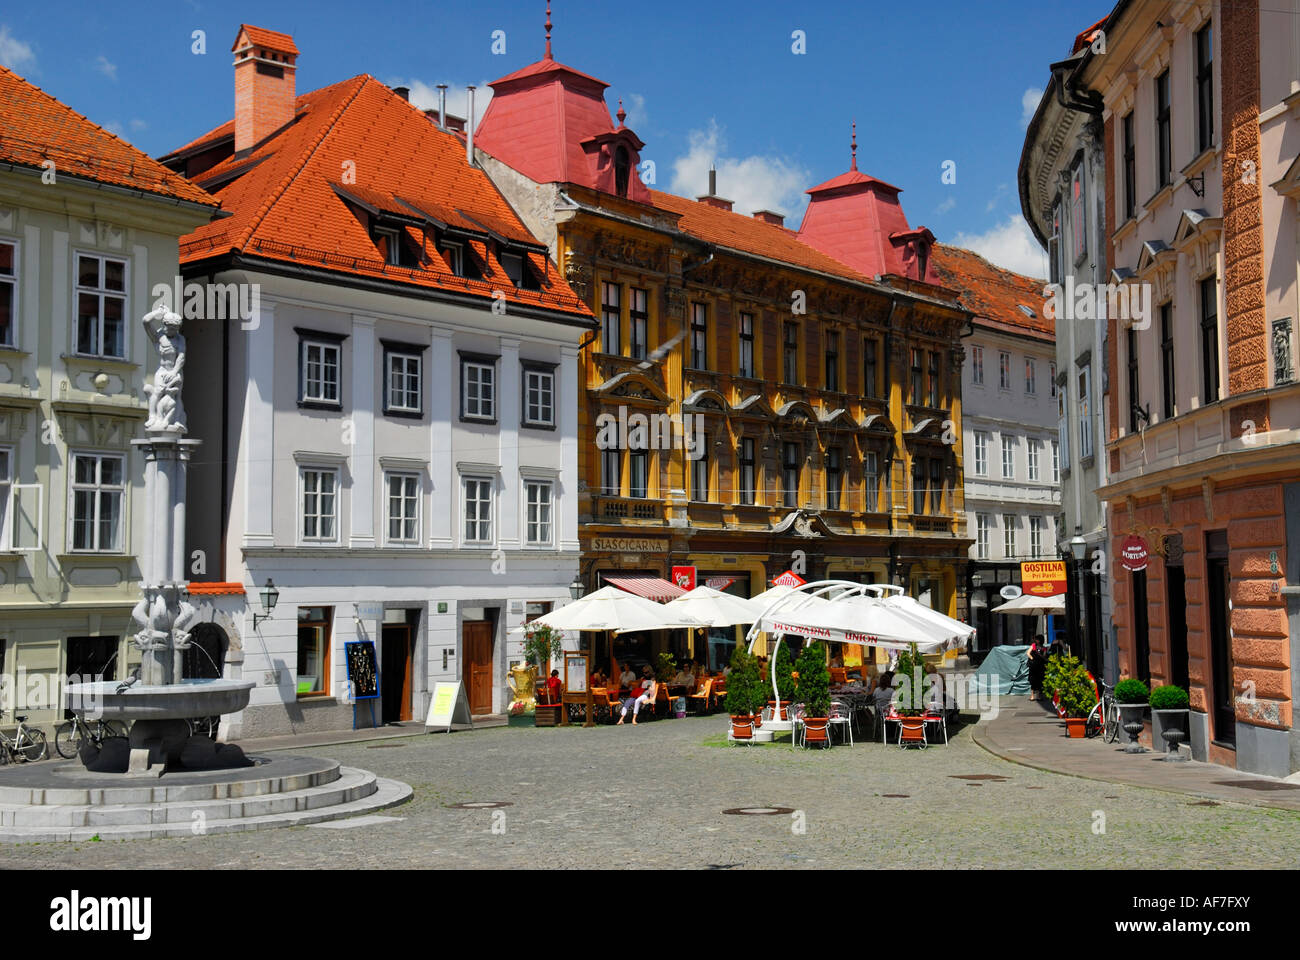 Street cafes and fountain in Old Town Ljubljana Slovenia - Stock Image